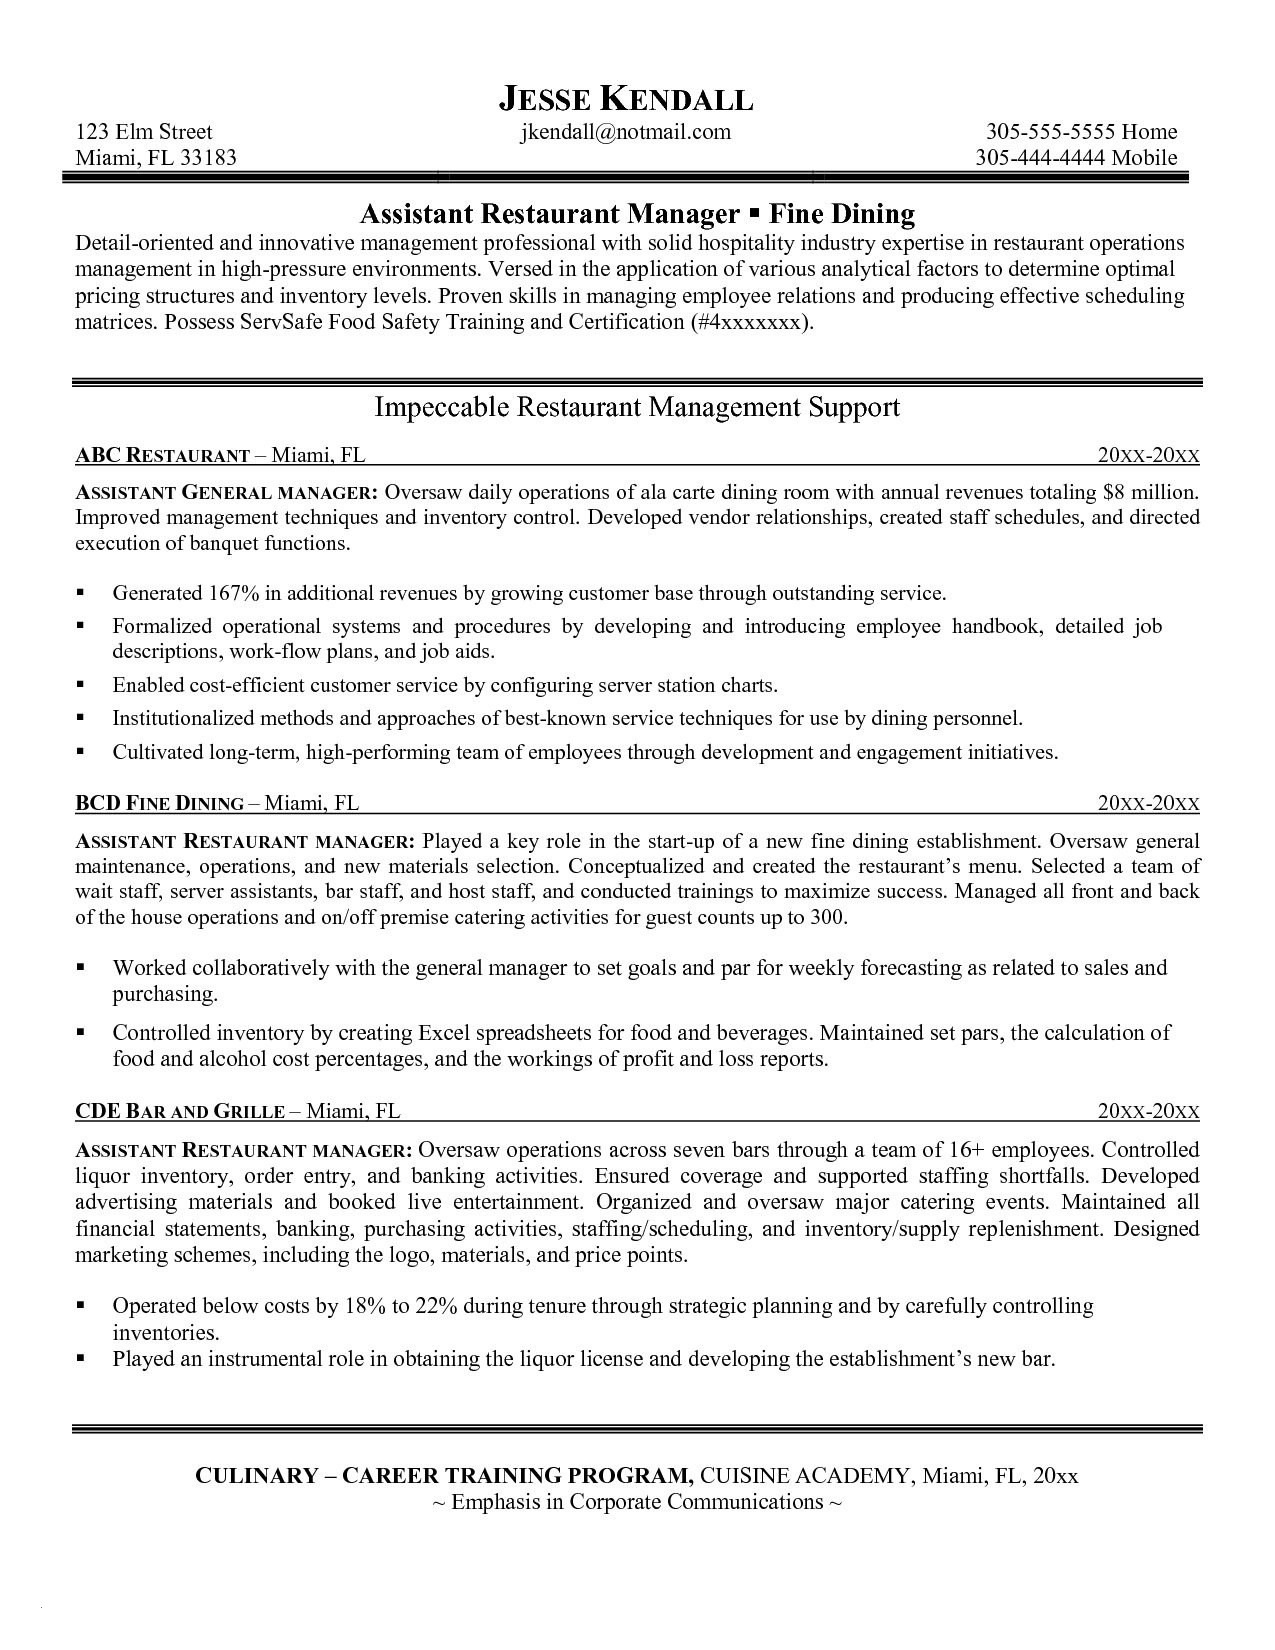 Hospitality Manager Resume - Restaurant General Manager Resume Paragraphrewriter